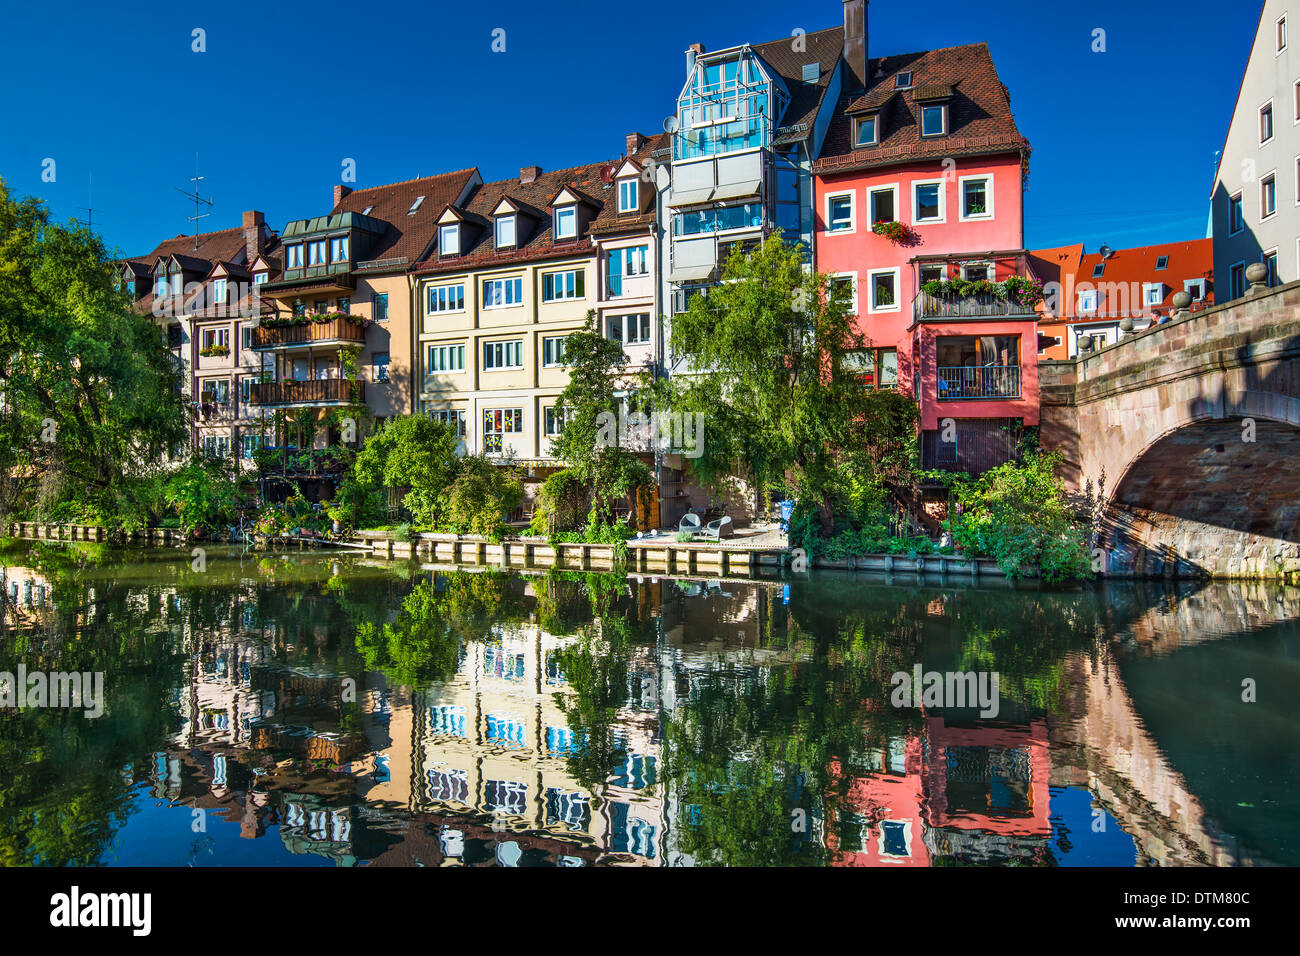 Nuremberg, Germany on the historic Pegnitz River. - Stock Image